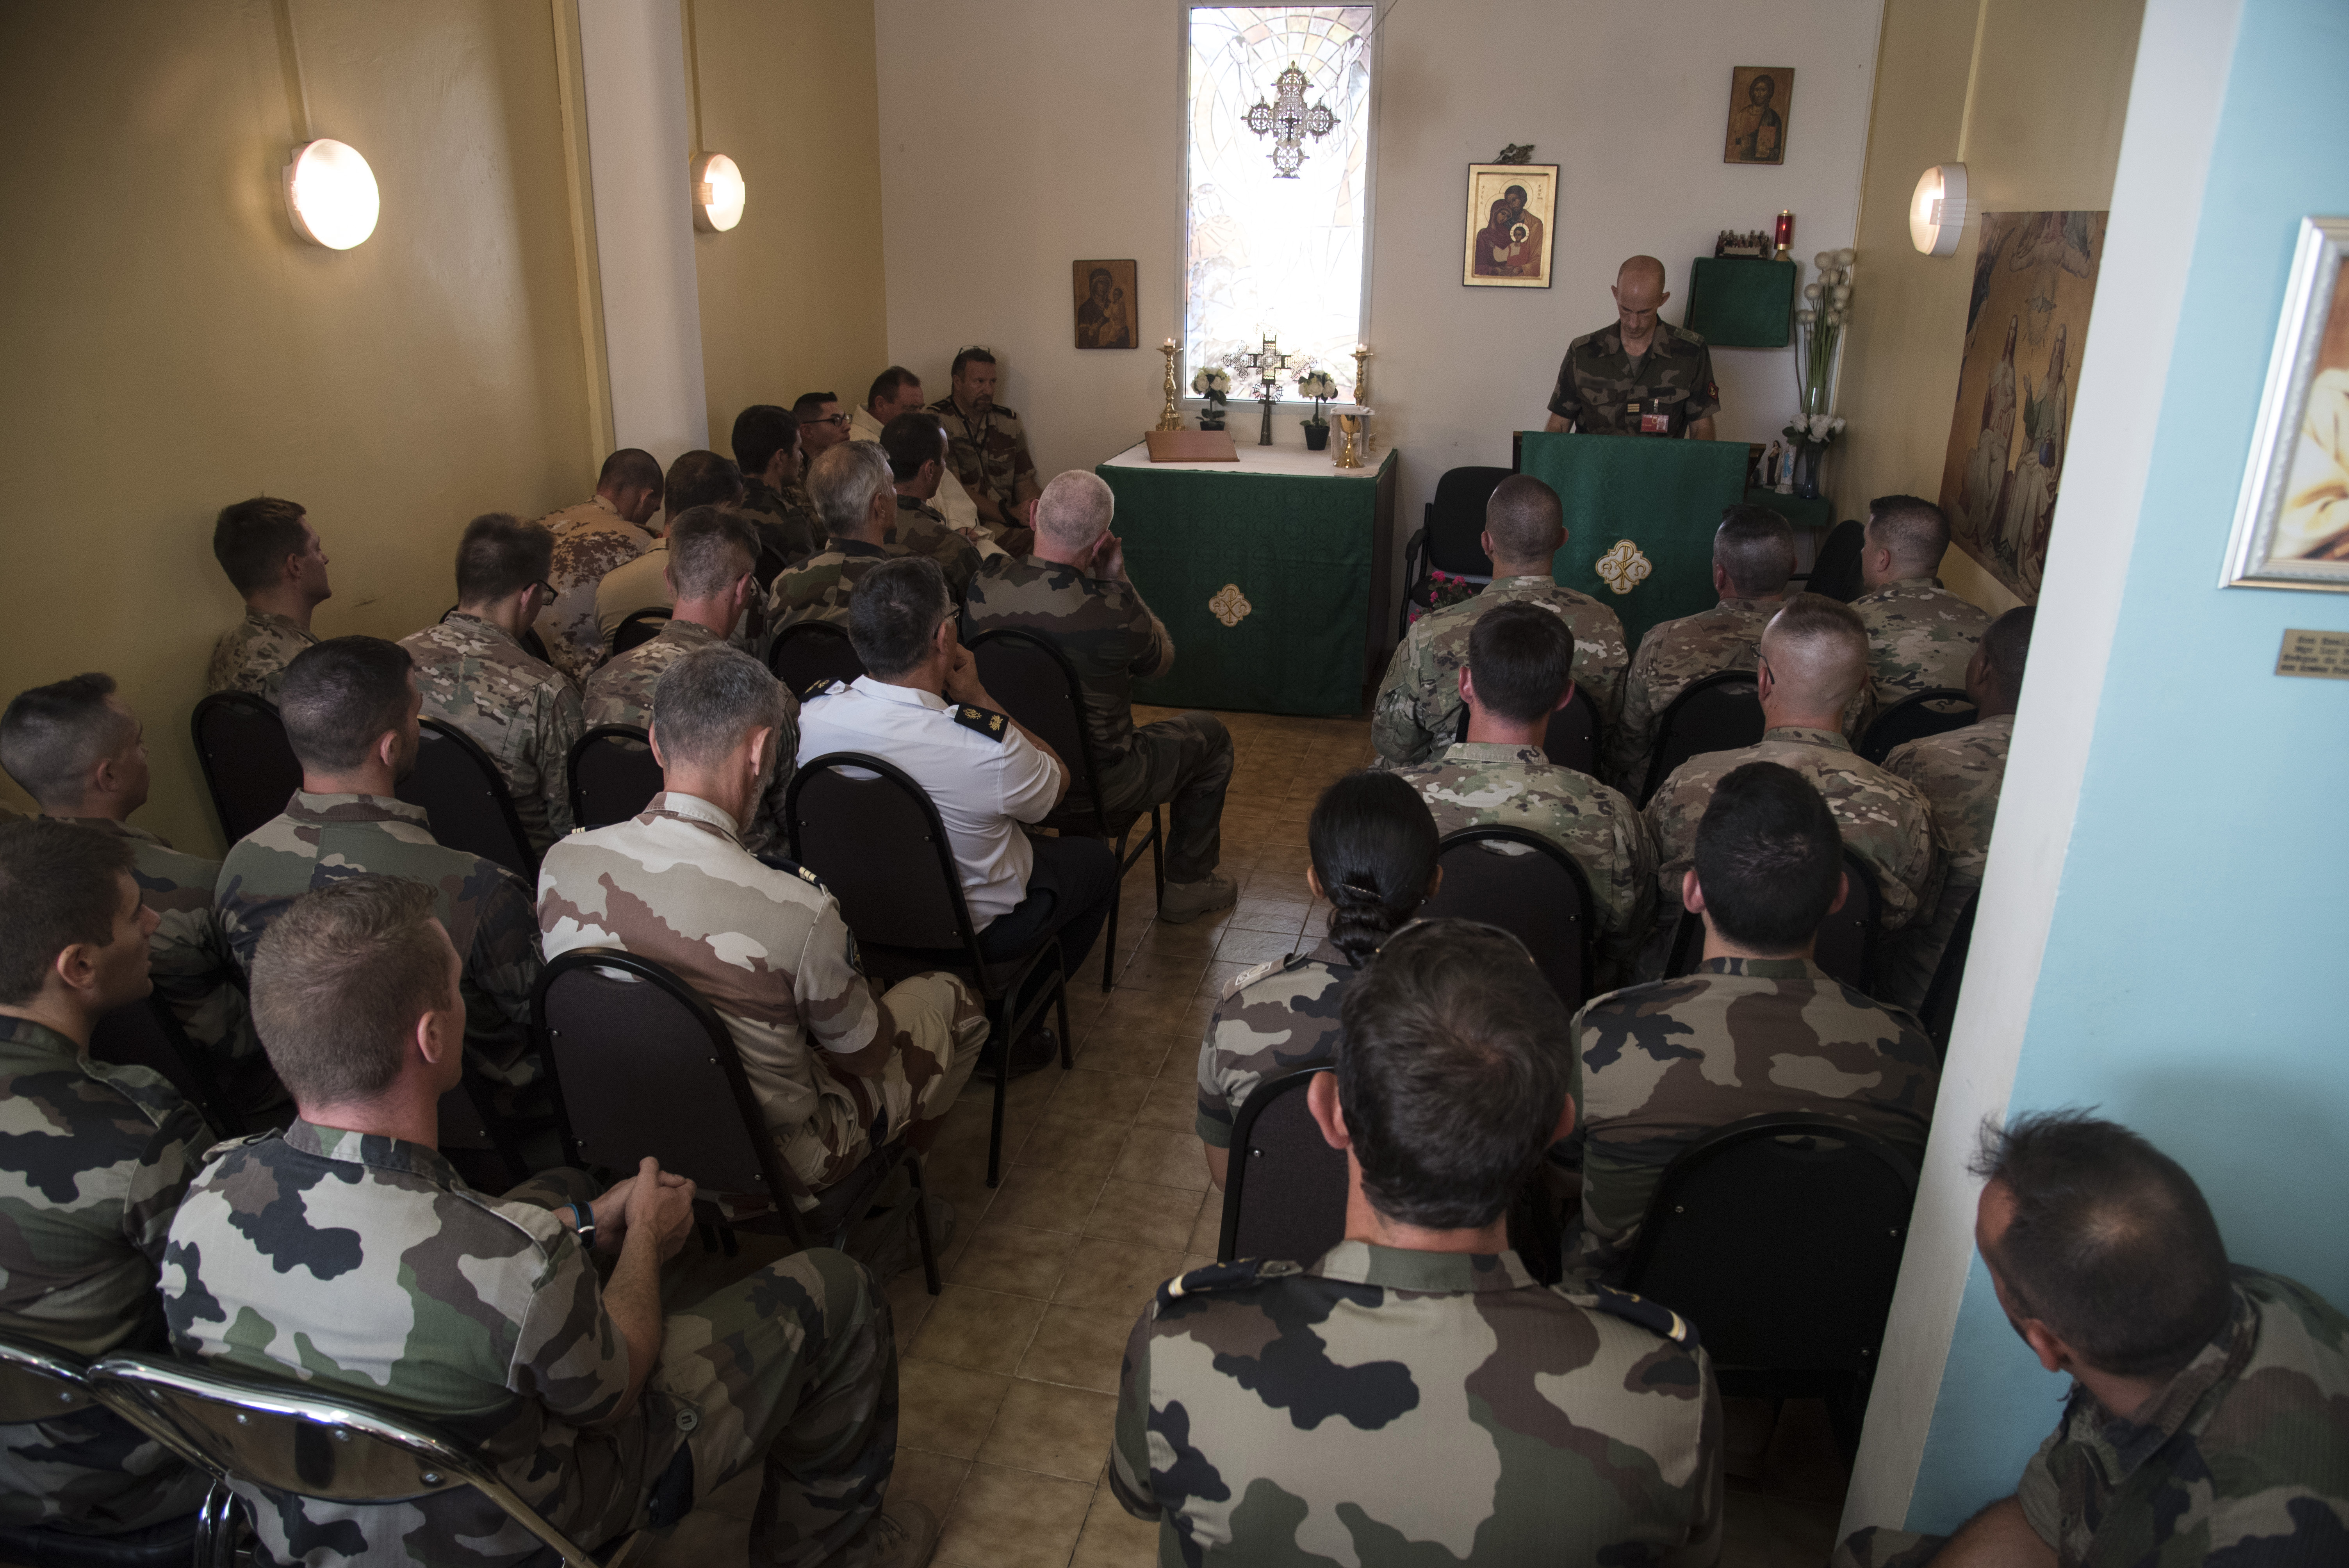 DJIBOUTI- U.S., French and Djiboutian airborne forces attend a church mass honoring St. Michel's day, the patron saint of paratroopers, Sept. 29, 2016, at the French air base in Djibouti City, Djibouti. The airborne forces began the celebrations with a static line and high altitude low opening jump toward a designated drop zone, followed by a church mass and a ceremony where several U.S. airborne forces were awarded French jump wings. (U.S. Air Force photo by Staff Sgt. Tiffany DeNault)